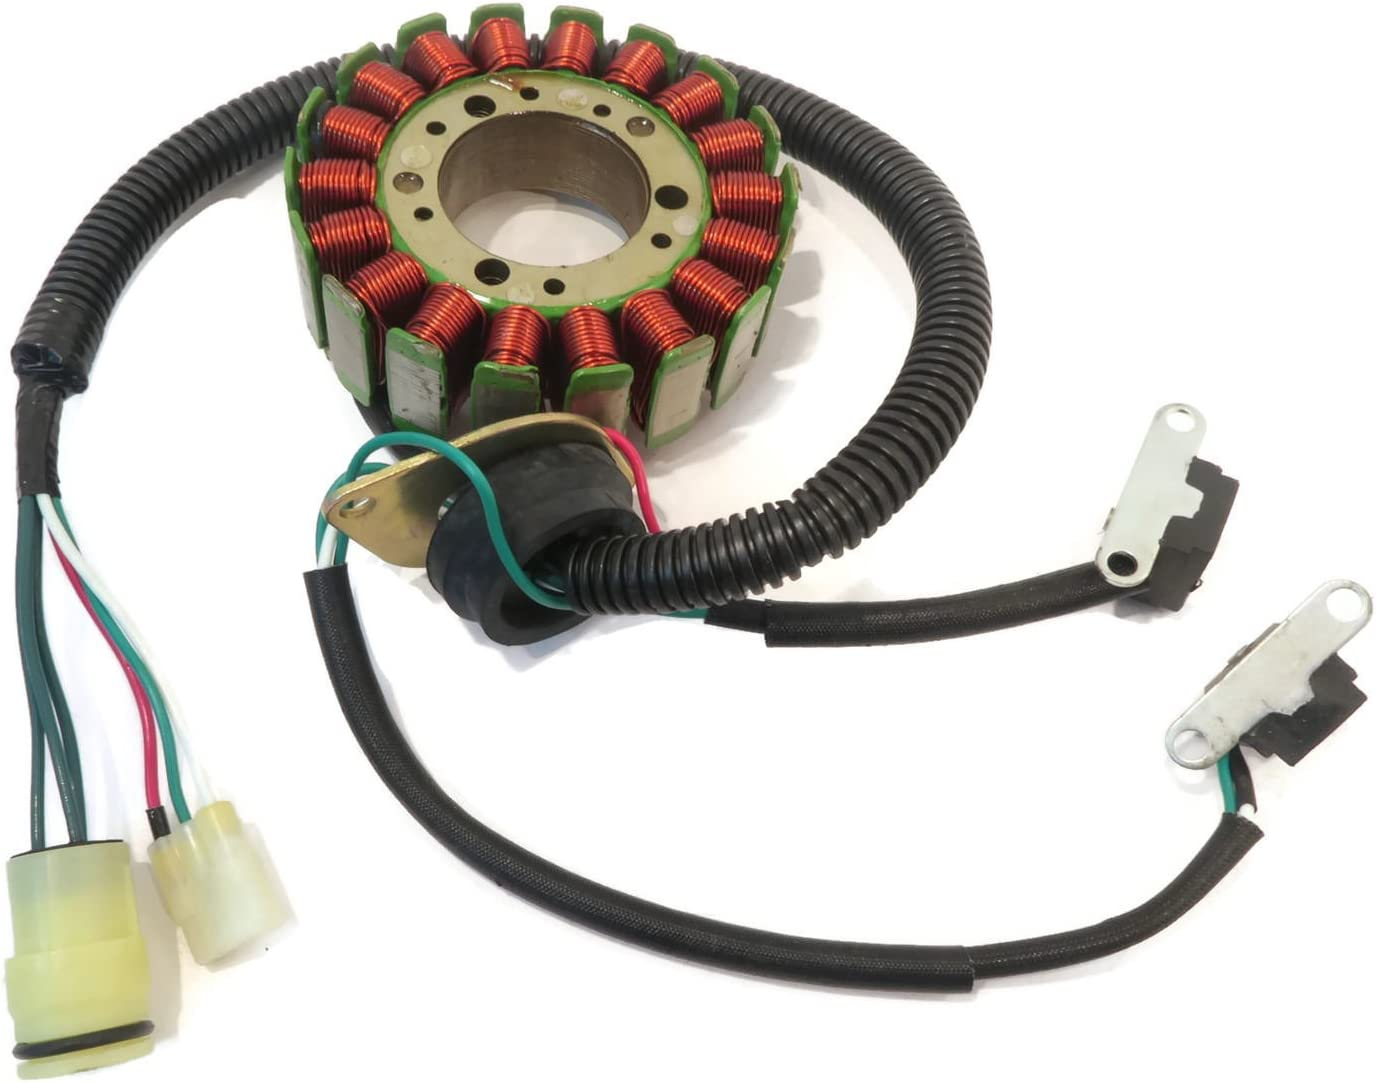 The Free shipping outlet ROP Shop Ignition STATOR for Yamaha 60E-81410-00-00 Magneto